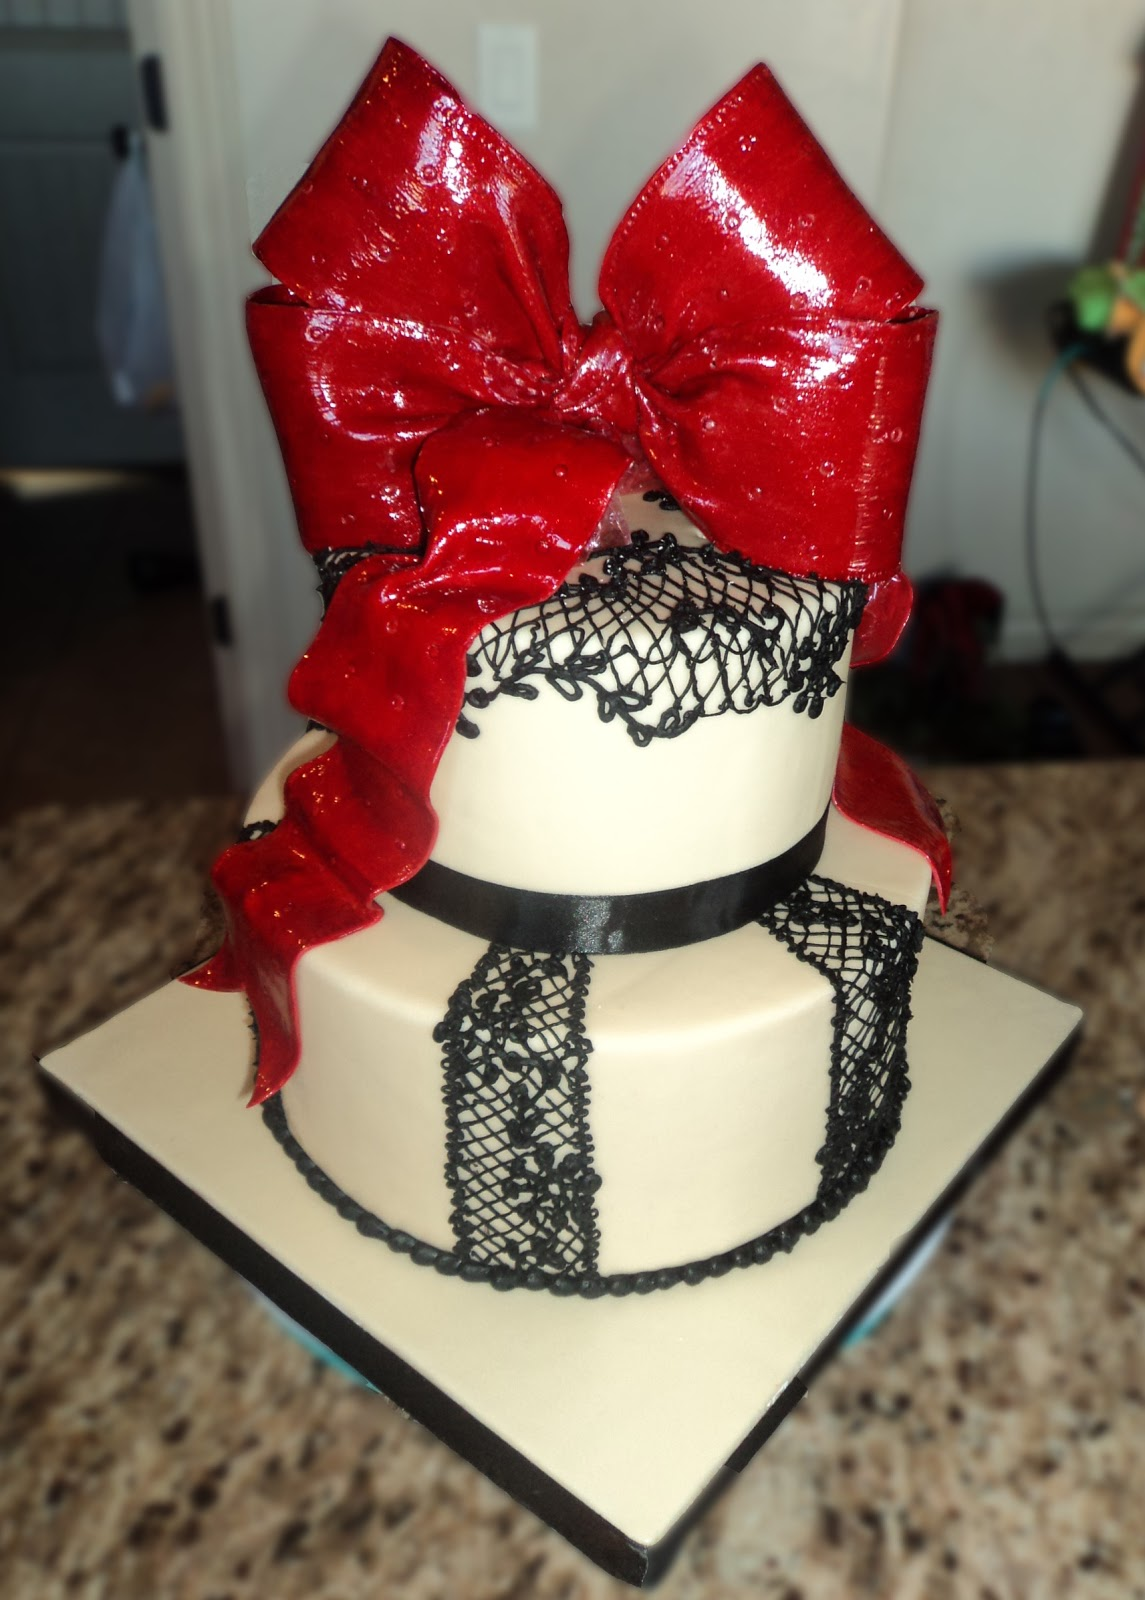 Delectable Cakes Spanish Lace Giant Red Bow Birthday Cake